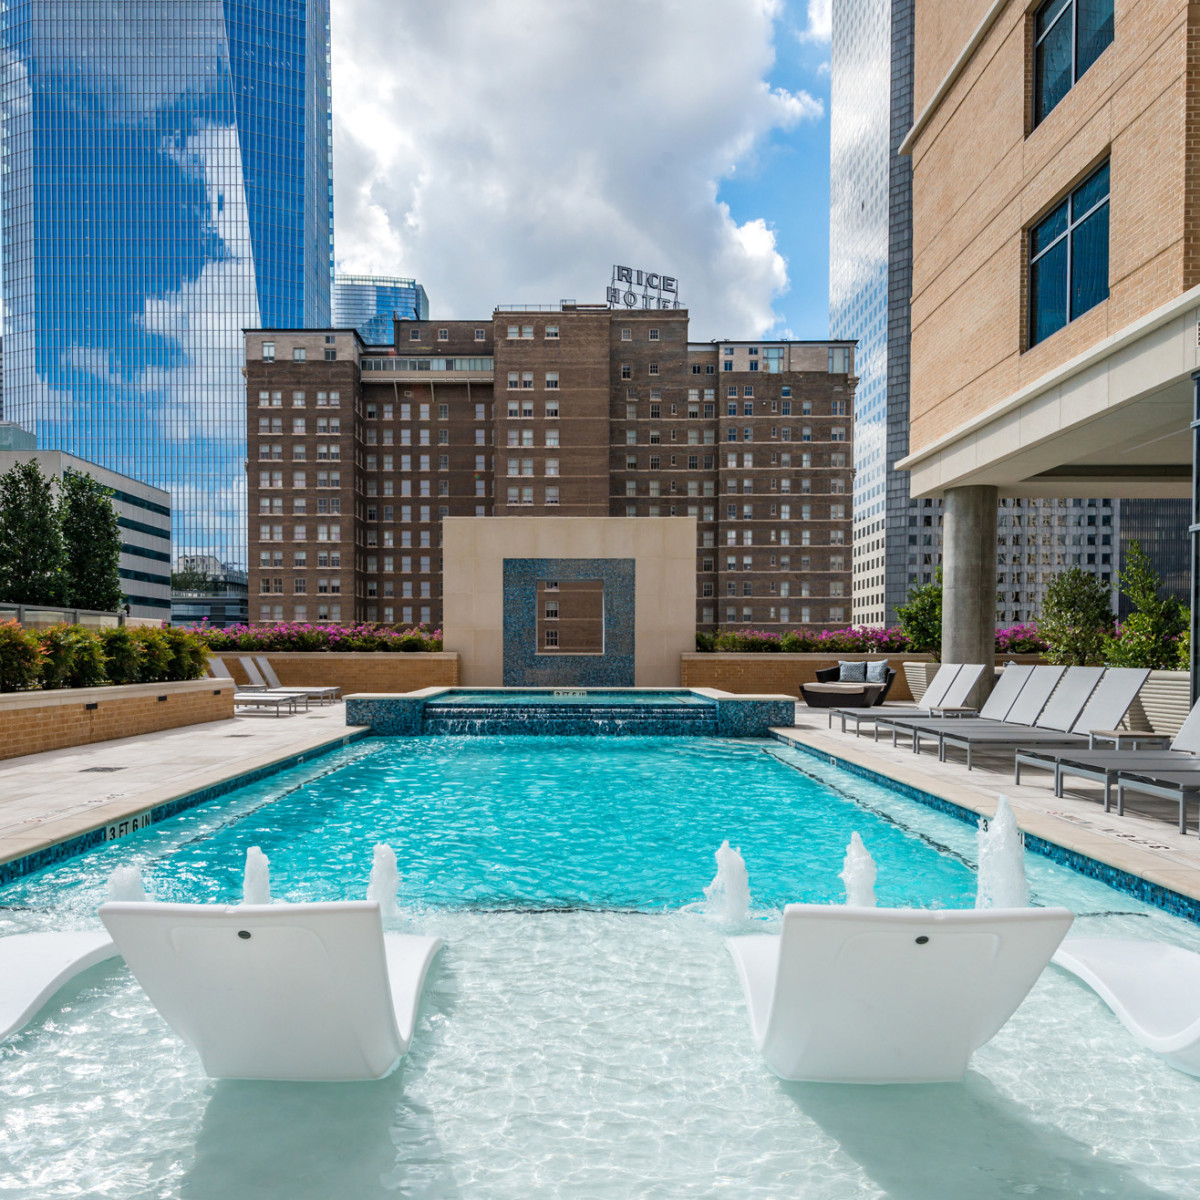 Houston, Aris Market Square, December 2017, 9th floor pool